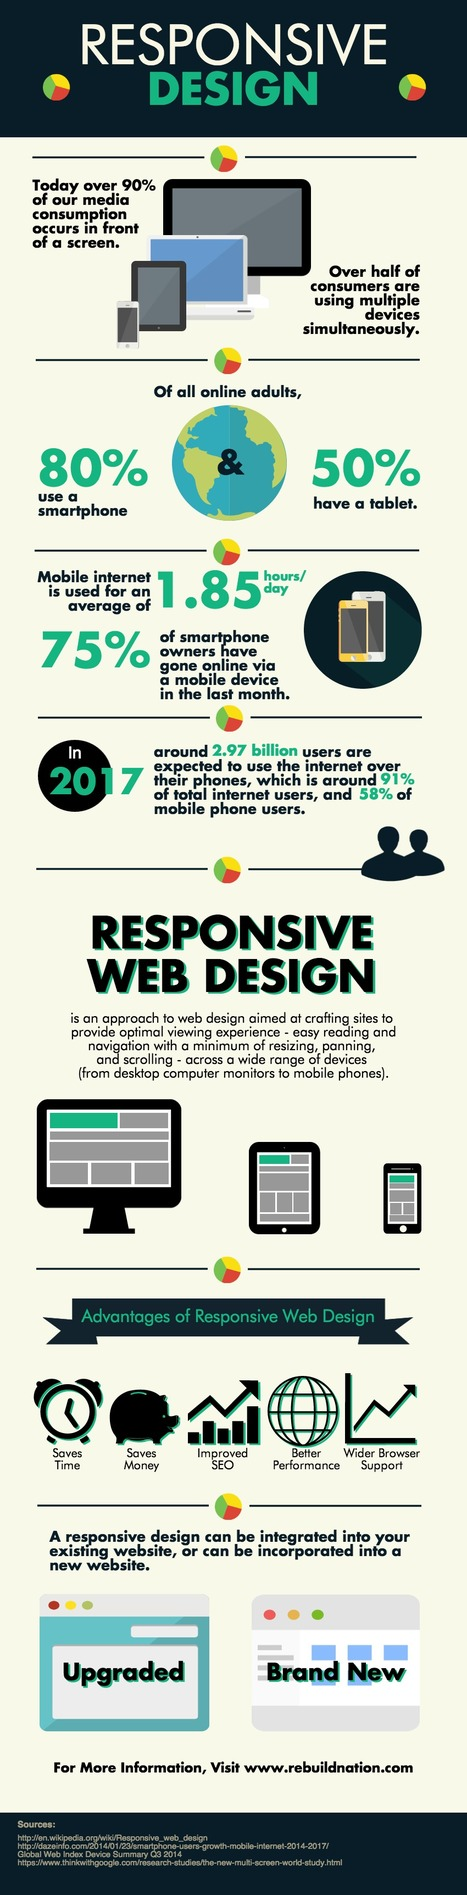 Why Responsive Design Should Be One of Your Top Priorities [INFOGRAPHIC] | Politically Incorrect | Scoop.it